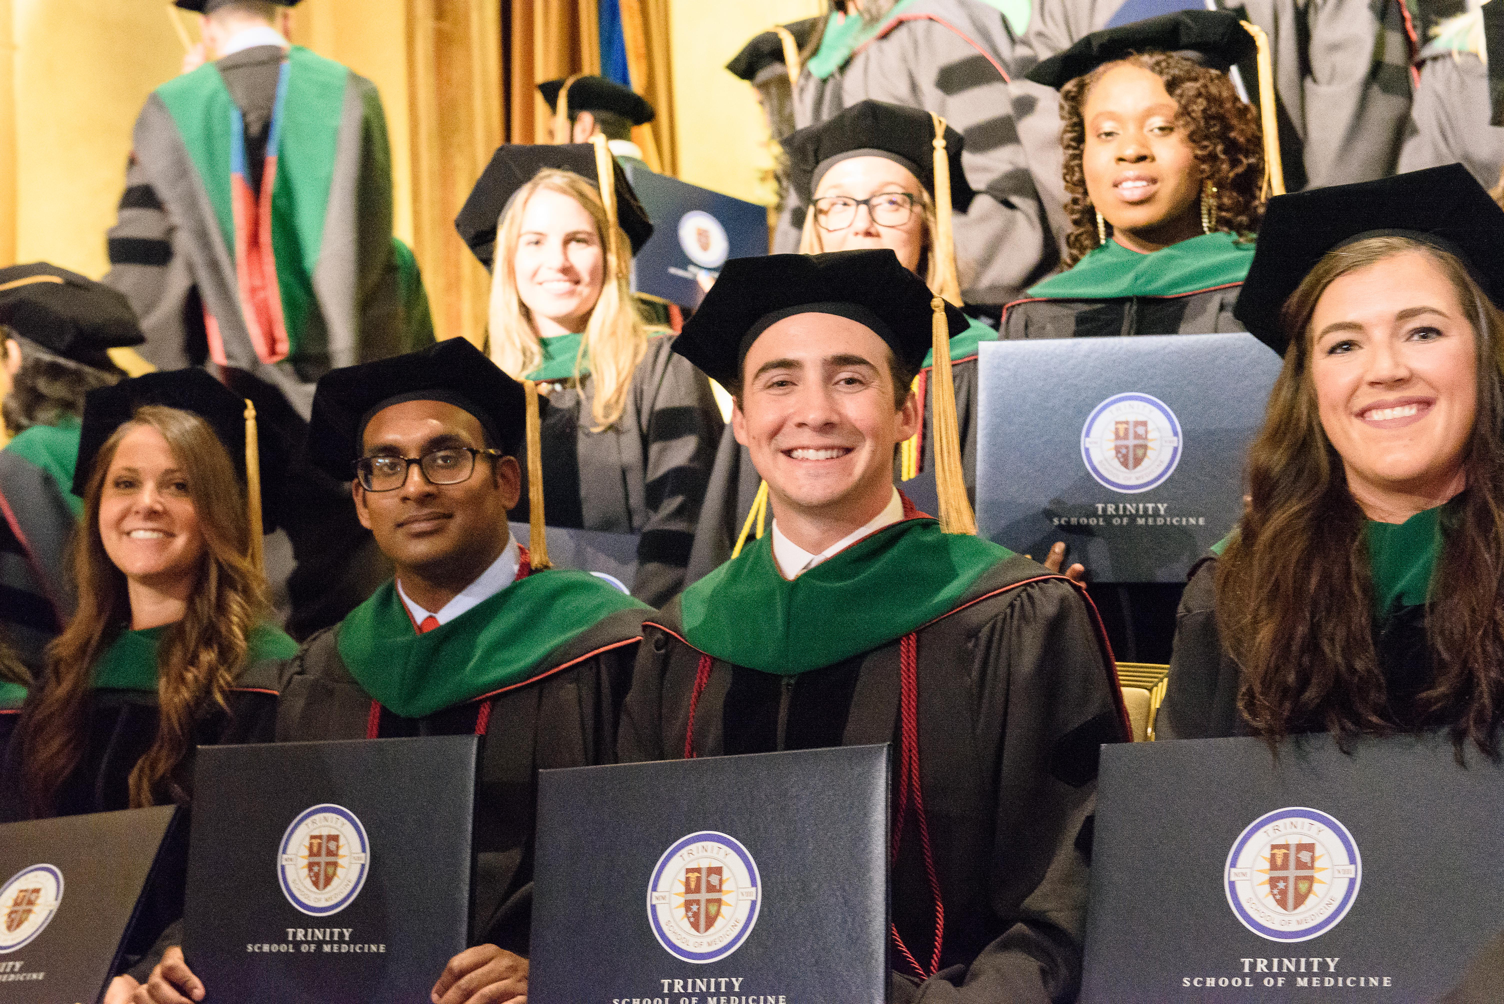 Trinity's 2018 Graduates Receive Their Diplomas at the commencement event June 2nd